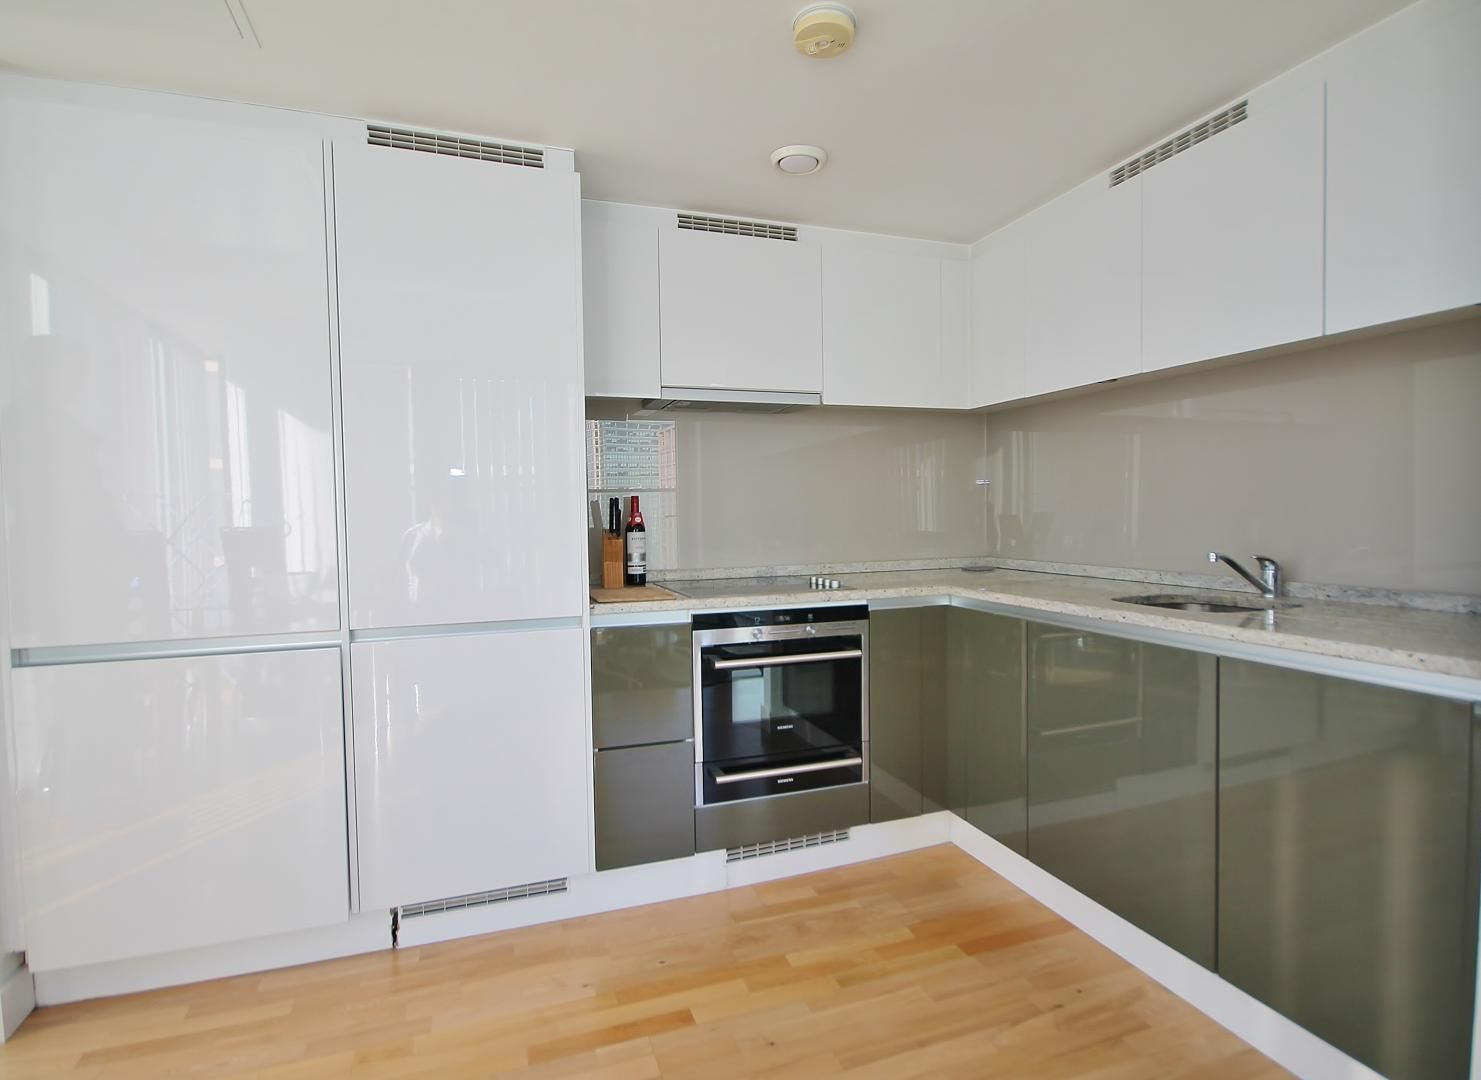 2 bed  to rent in Marsh Wall - Property Image 1